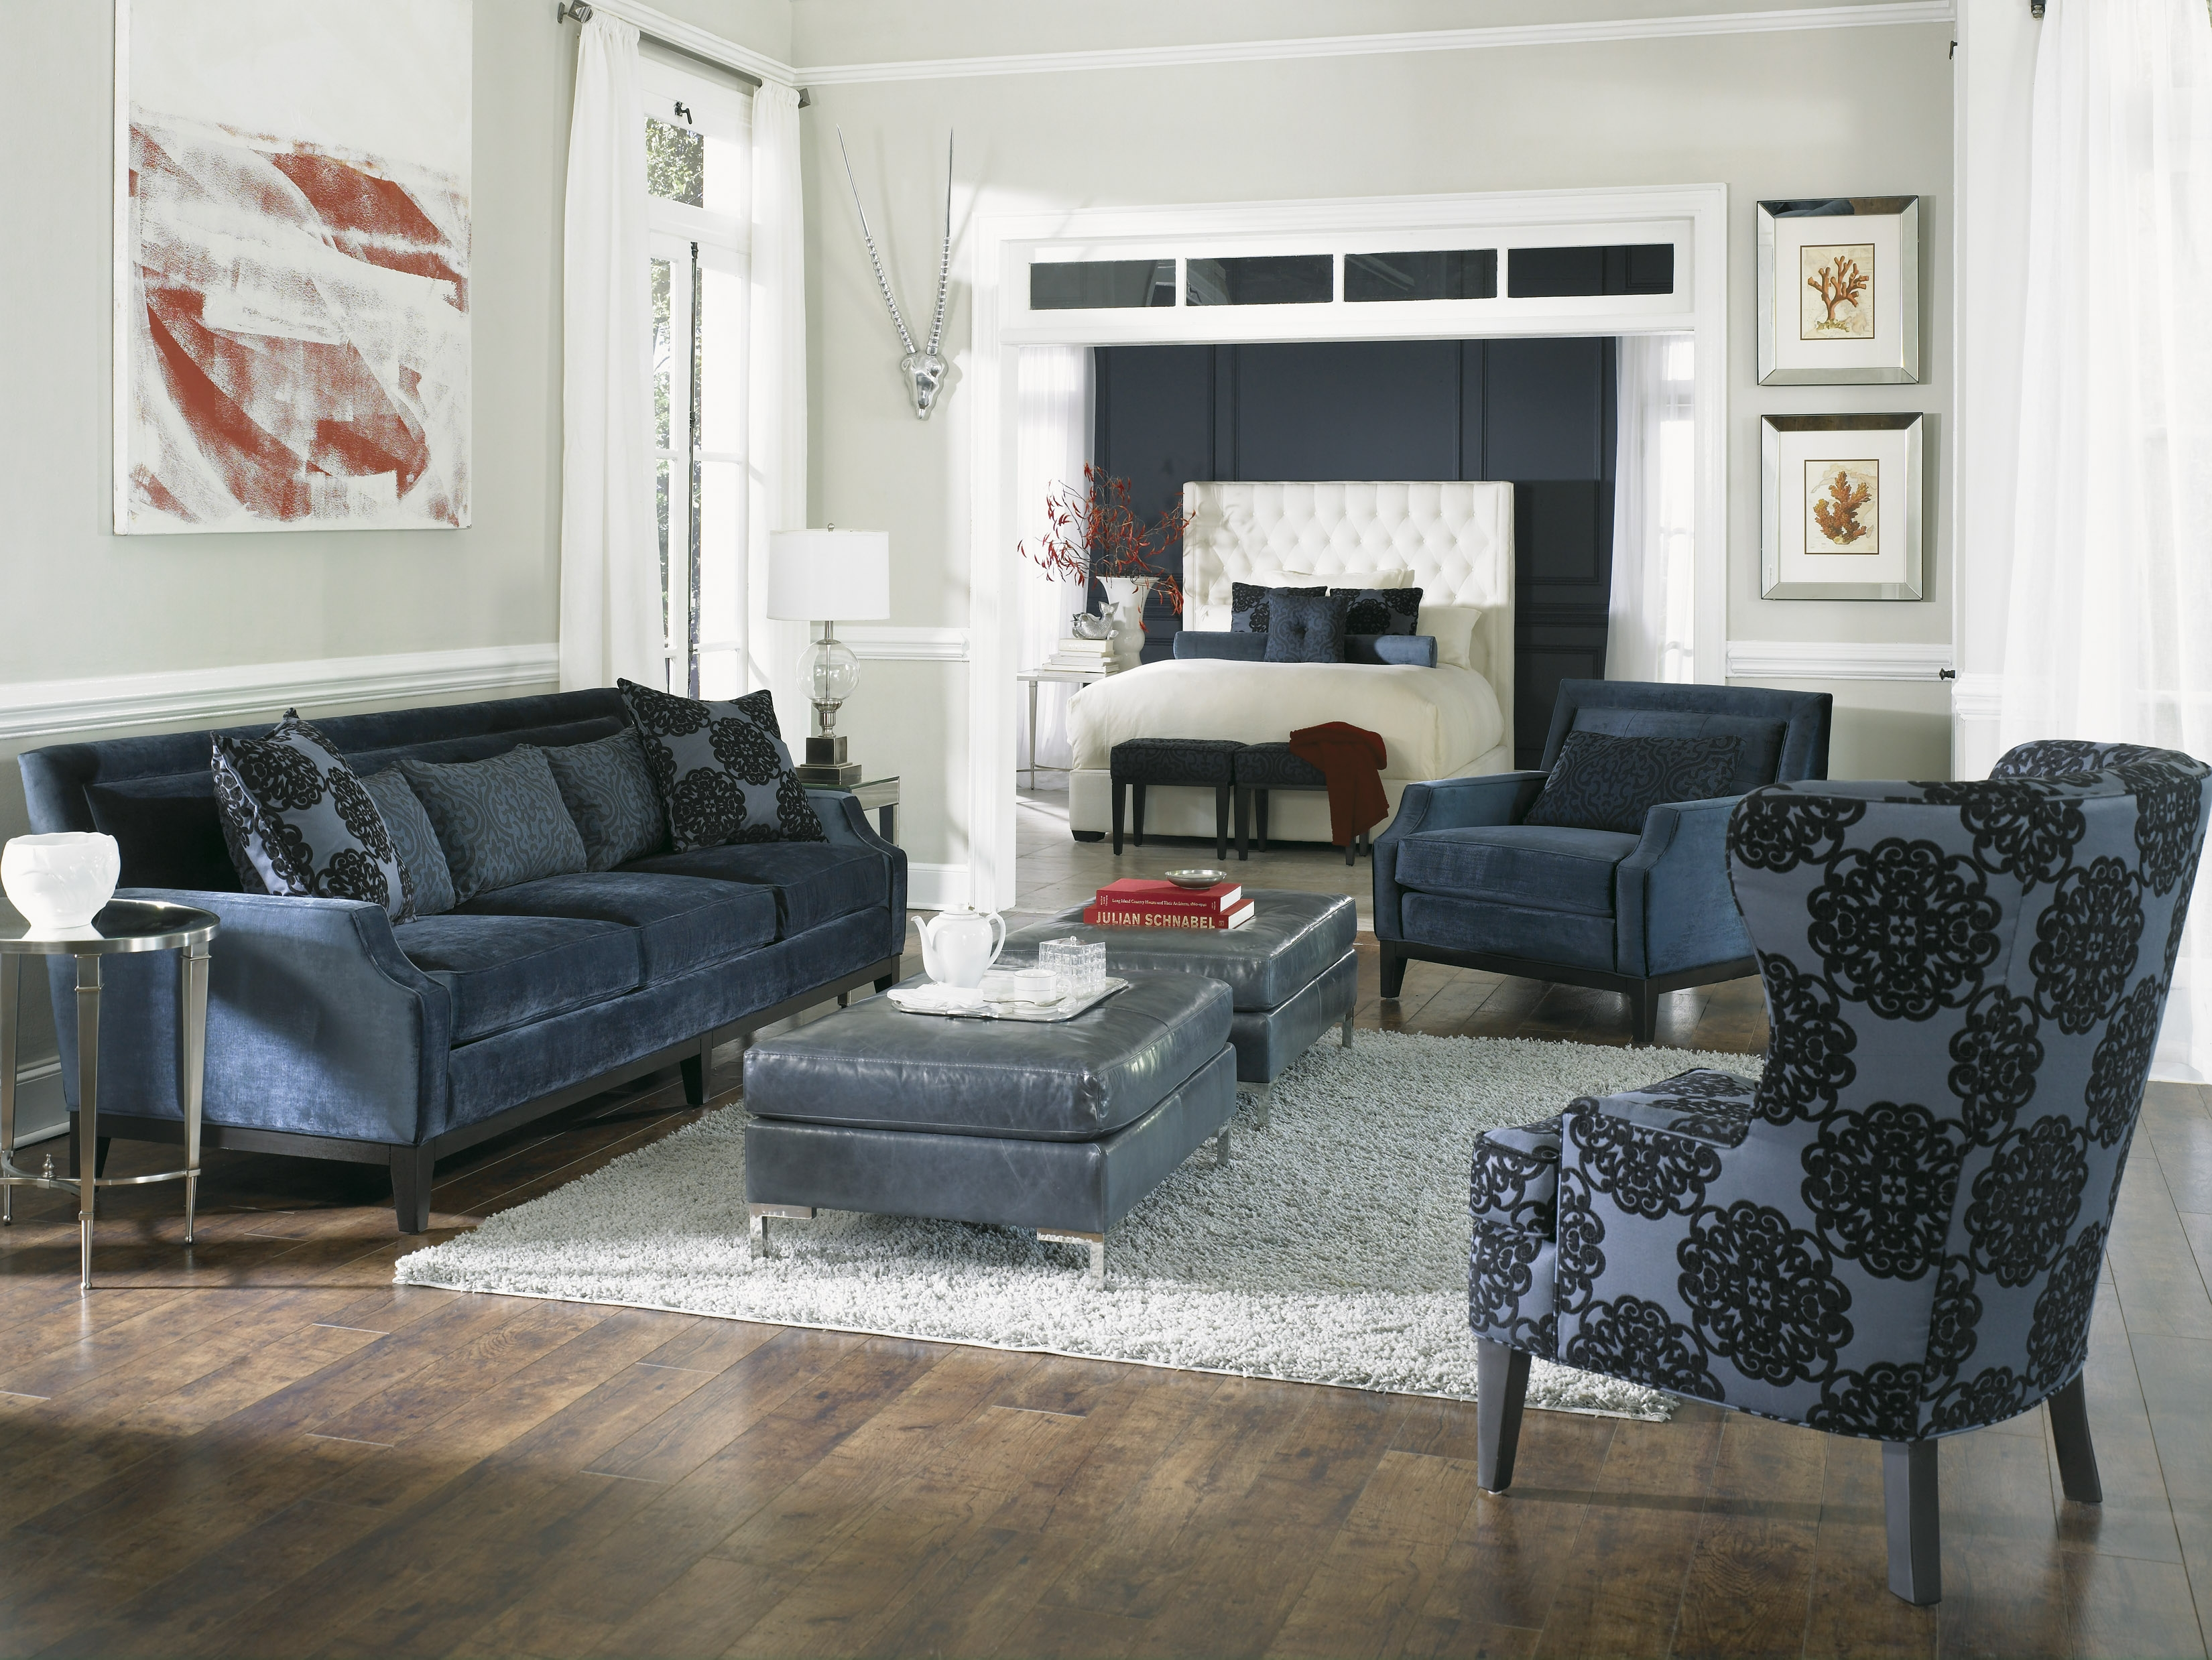 Rossdale Sofa Loveseat Chair Ottoman Accent Chairs Intended For Casual Sofas And Chairs (Image 13 of 15)